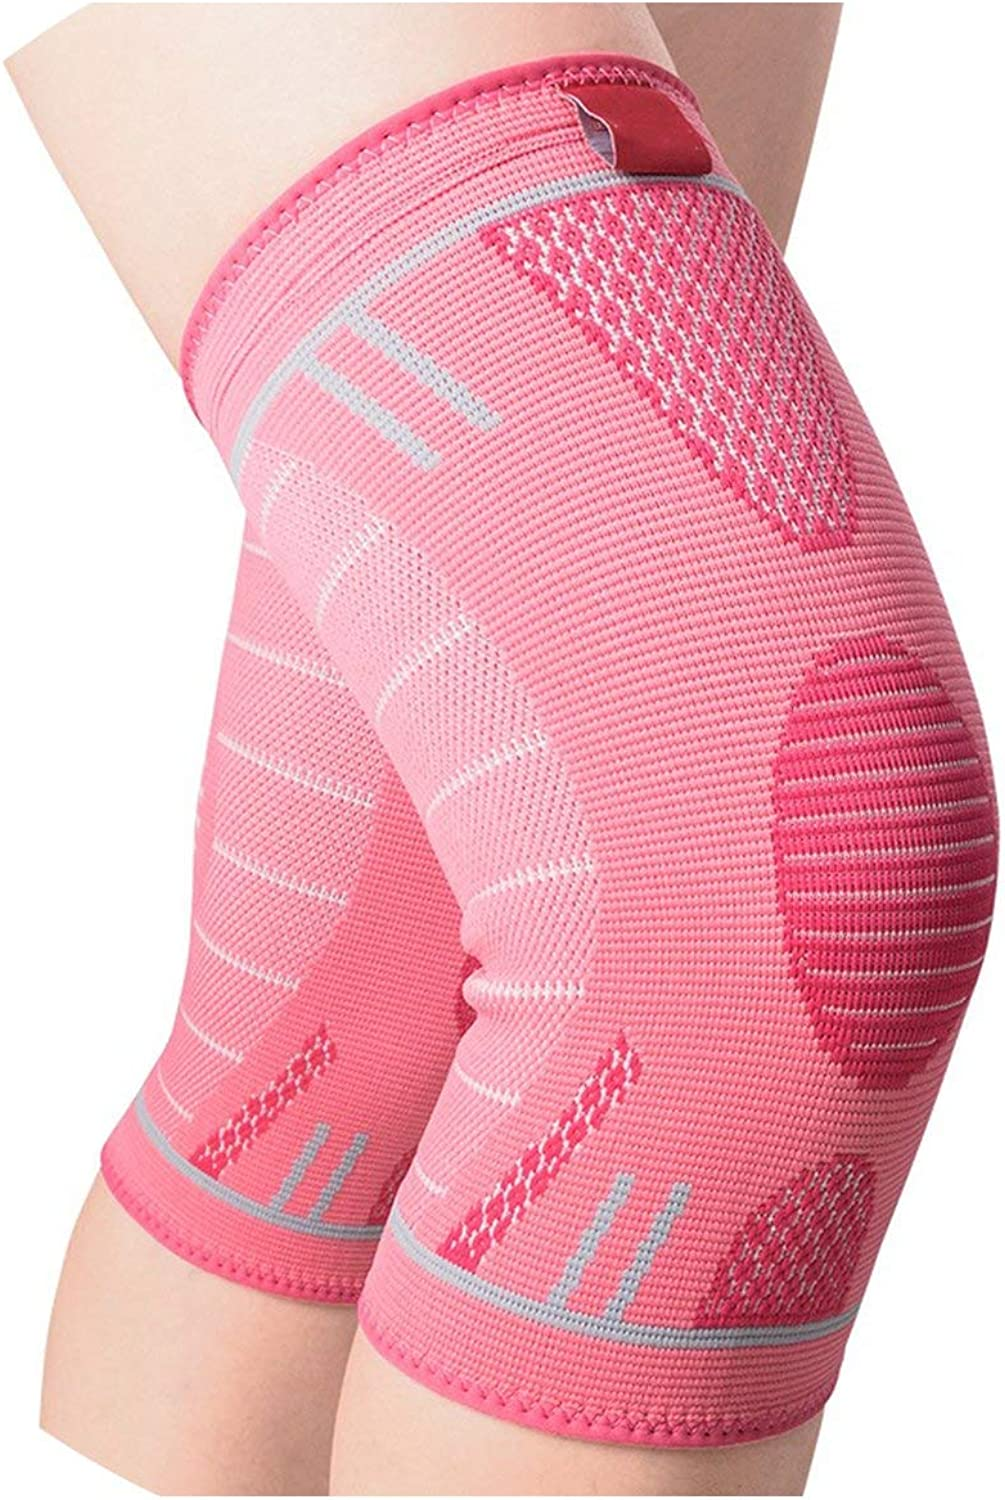 1 PC Knee Brace Support Elastic Nylon Sports Compression Knee Pad Sleeve for Running Arthritis Joint Pain Relief Kneepad,Pink 1PC,M